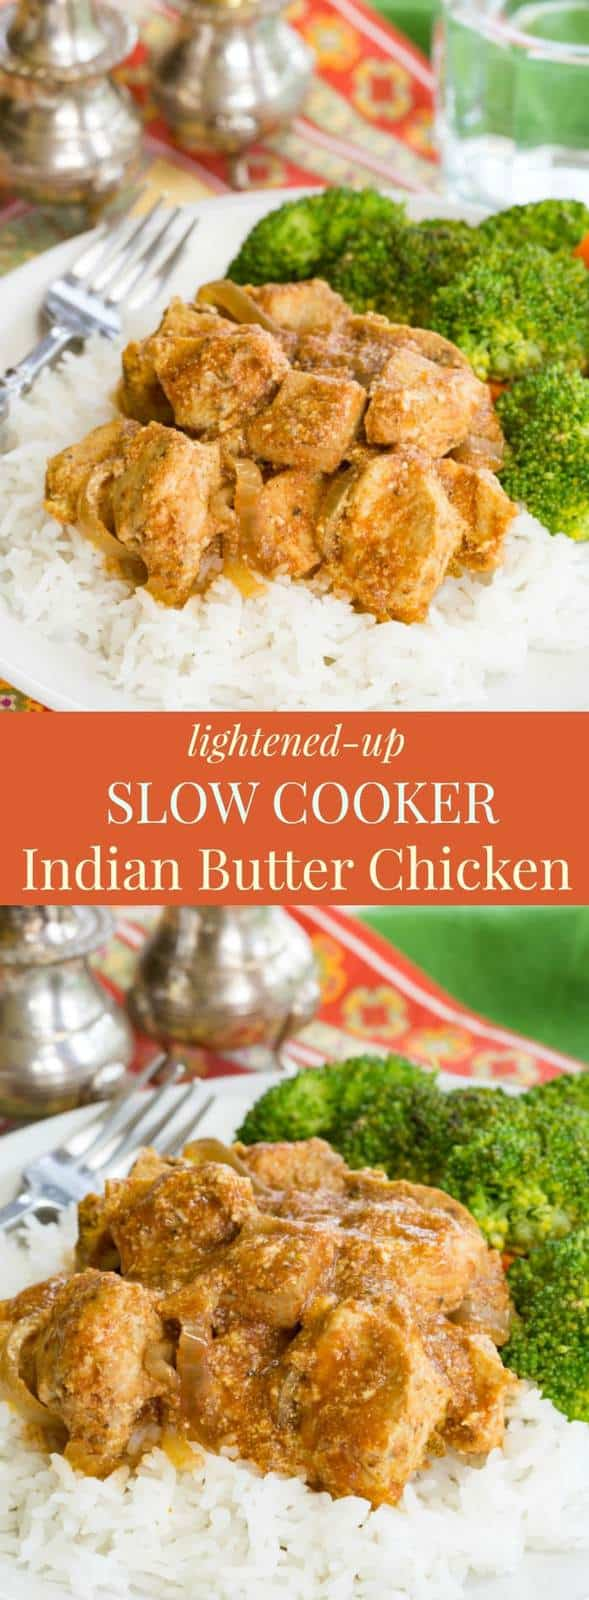 Lightened-Up Slow Cooker Indian Butter Chicken - this easy recipe is a healthier version of the traditional Indian dish. #ad